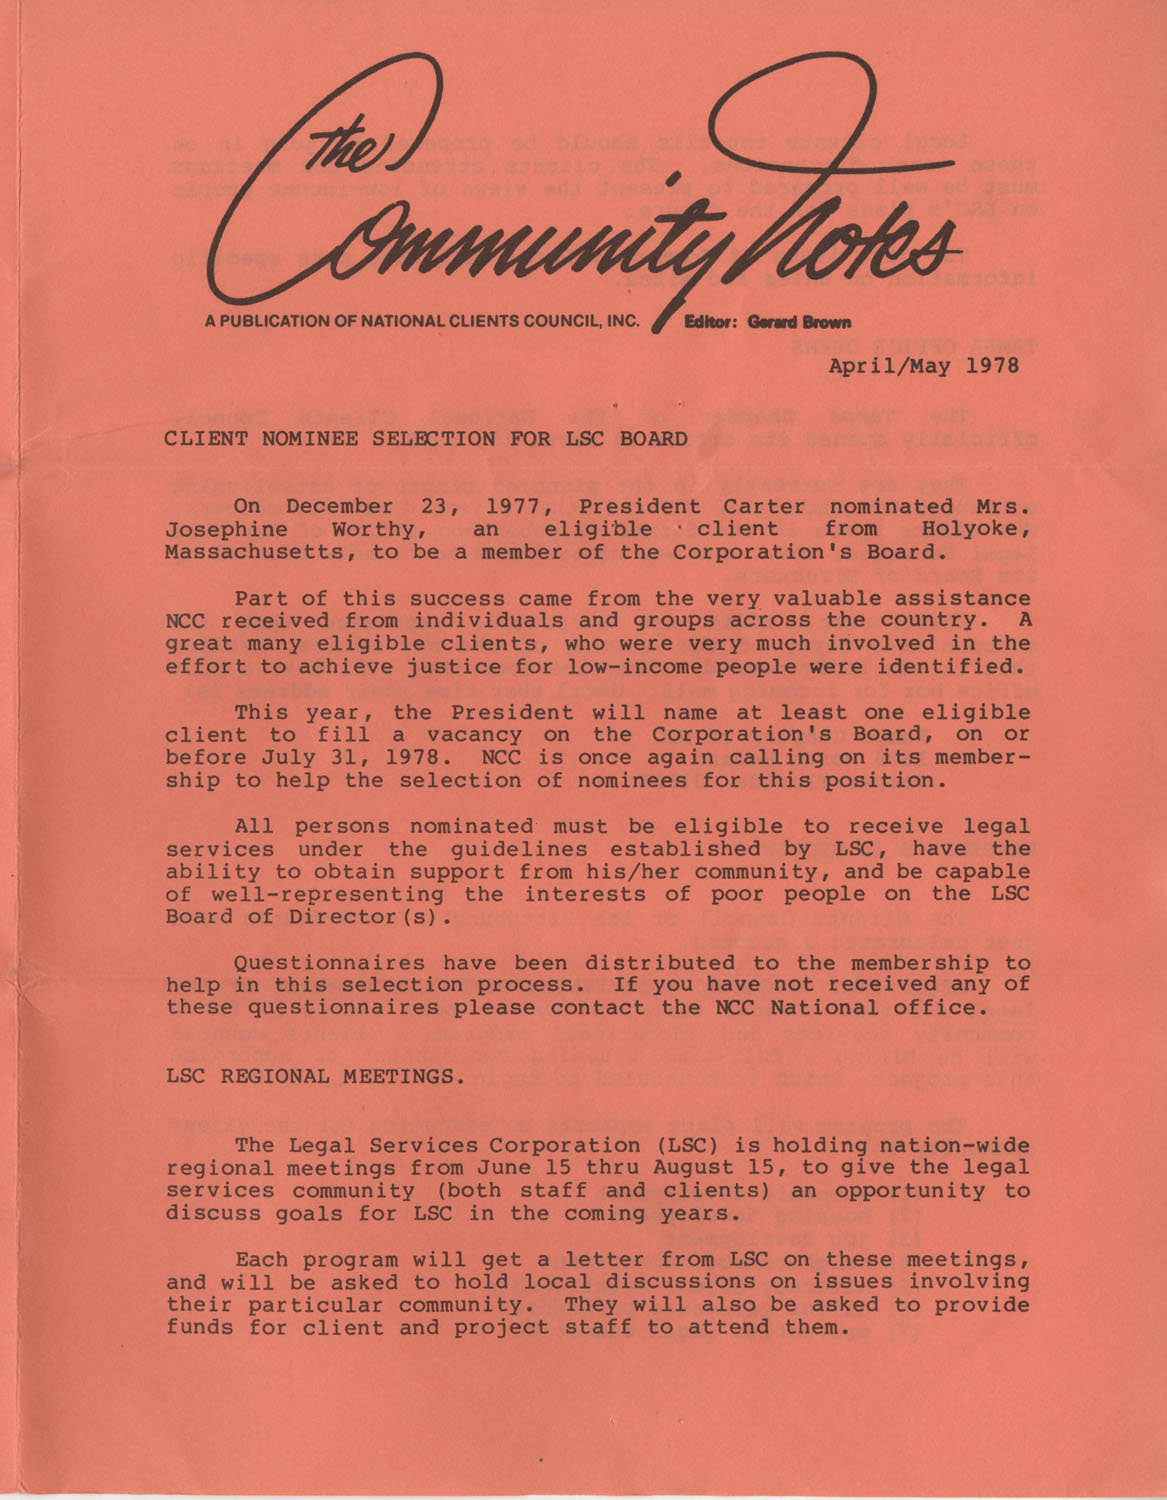 Community Notes, National Clients Council, April/May 1978